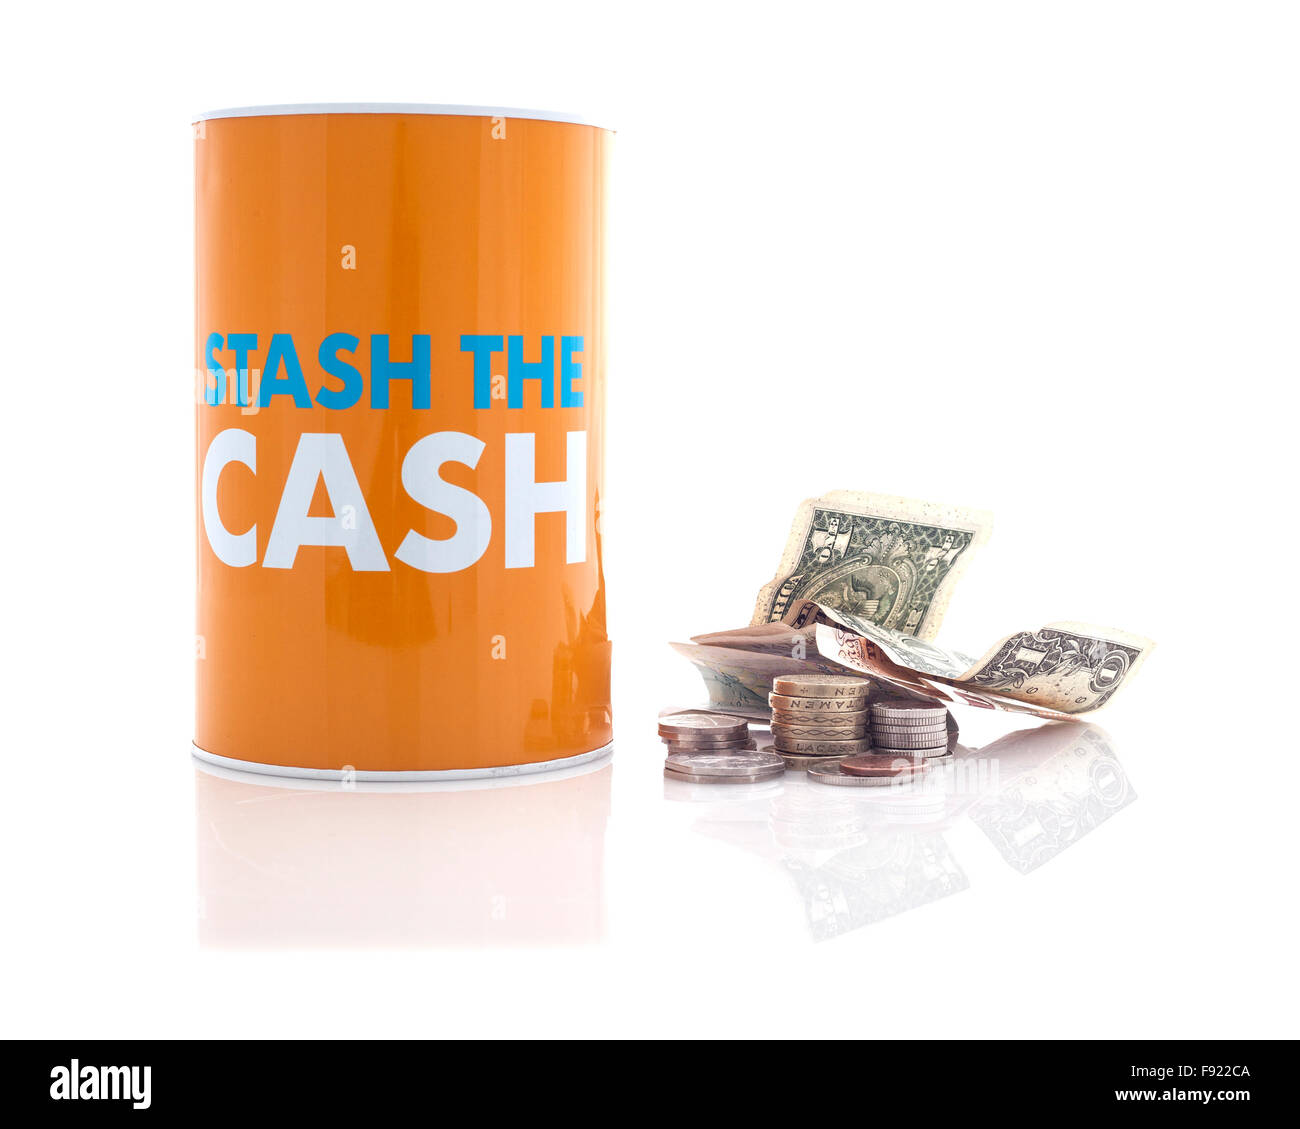 Stash the Cash Money Saving Concept on a white background - Stock Image